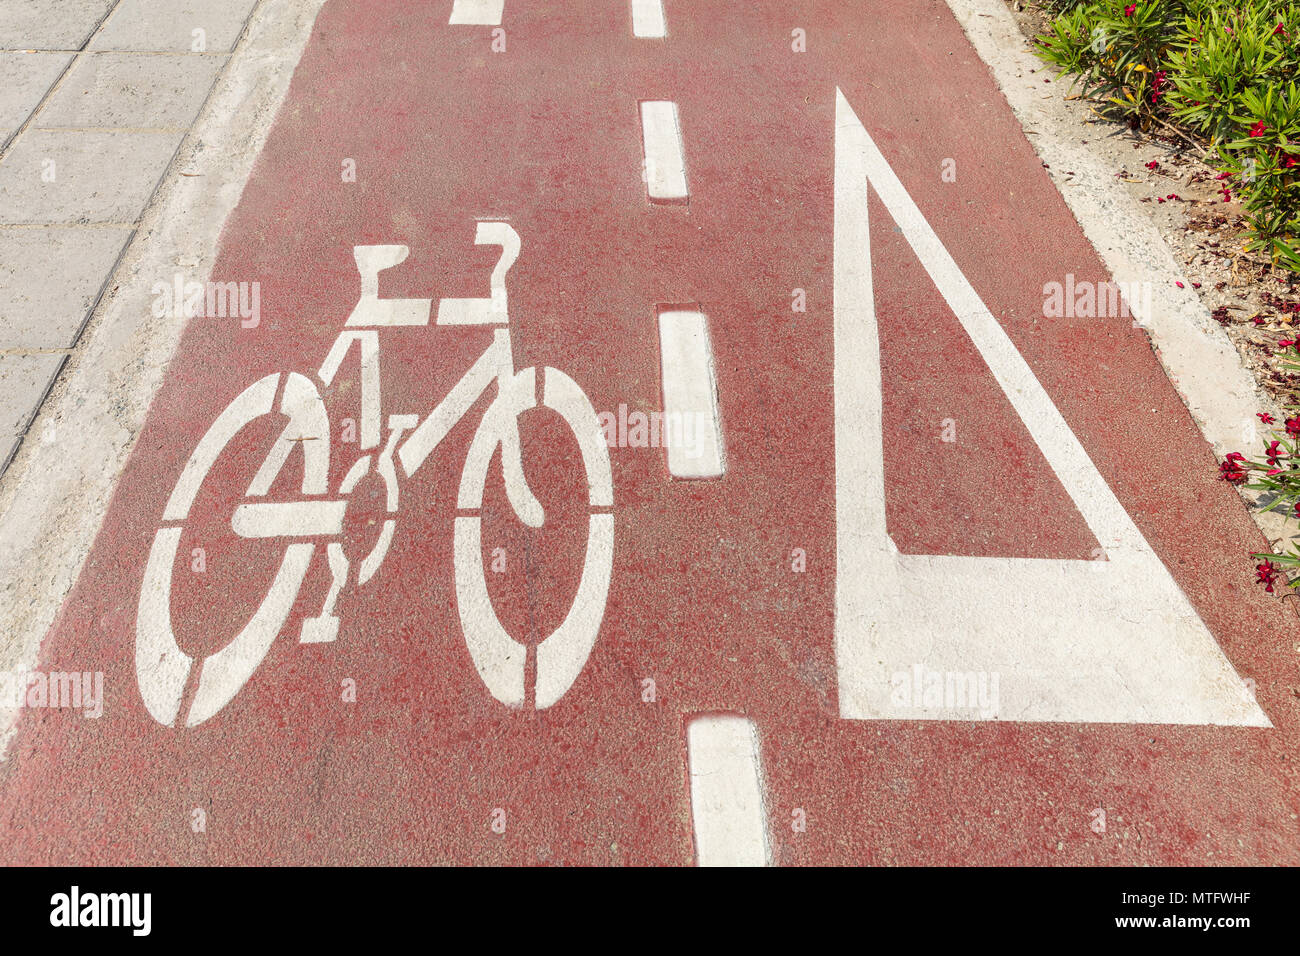 Bike lane. Bicycle sign and white directional arrow on red asphalt path Stock Photo